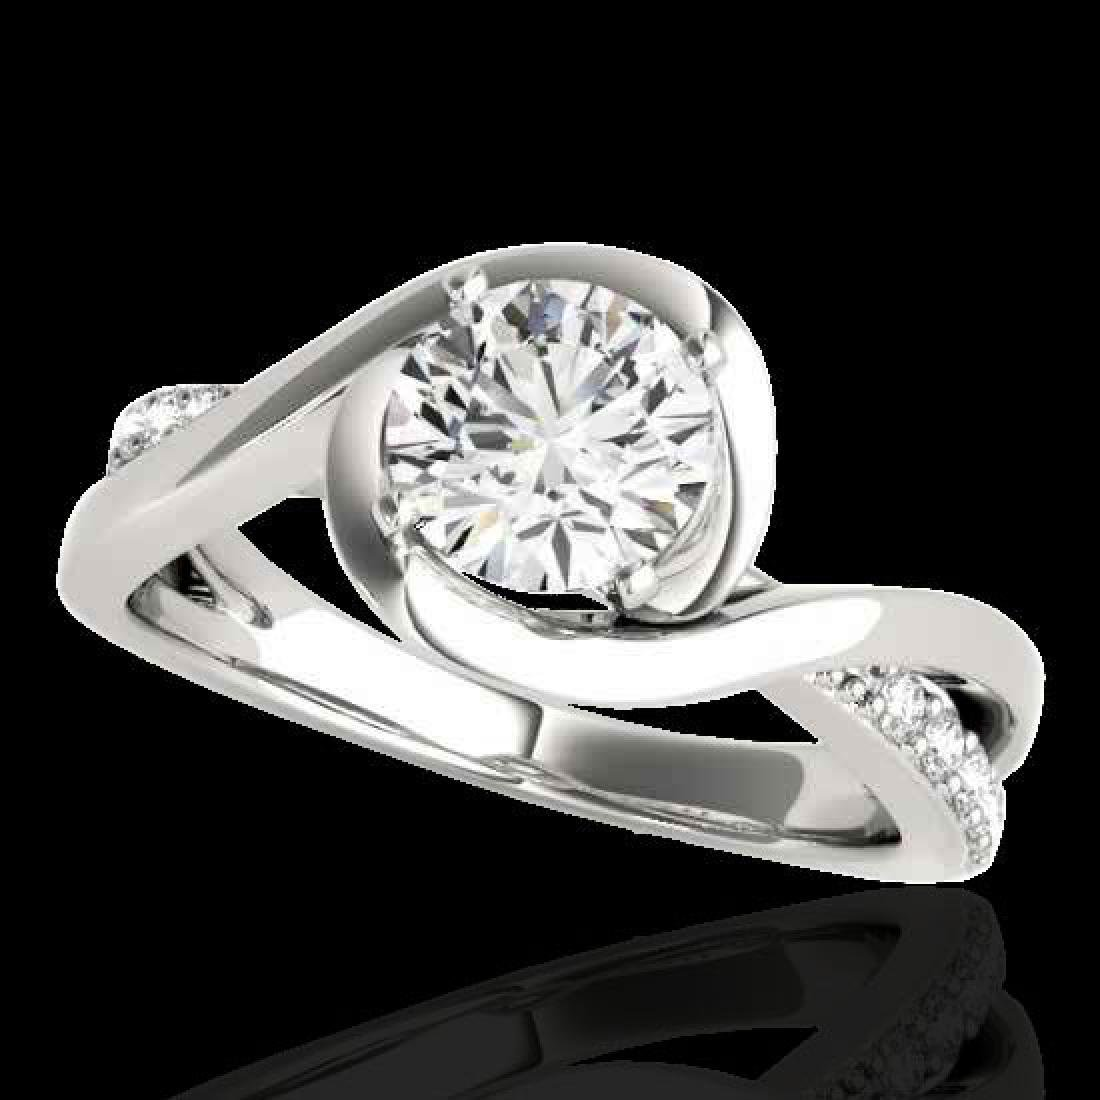 1.15 CTW H-SI/I Certified Diamond Solitaire Ring 10K